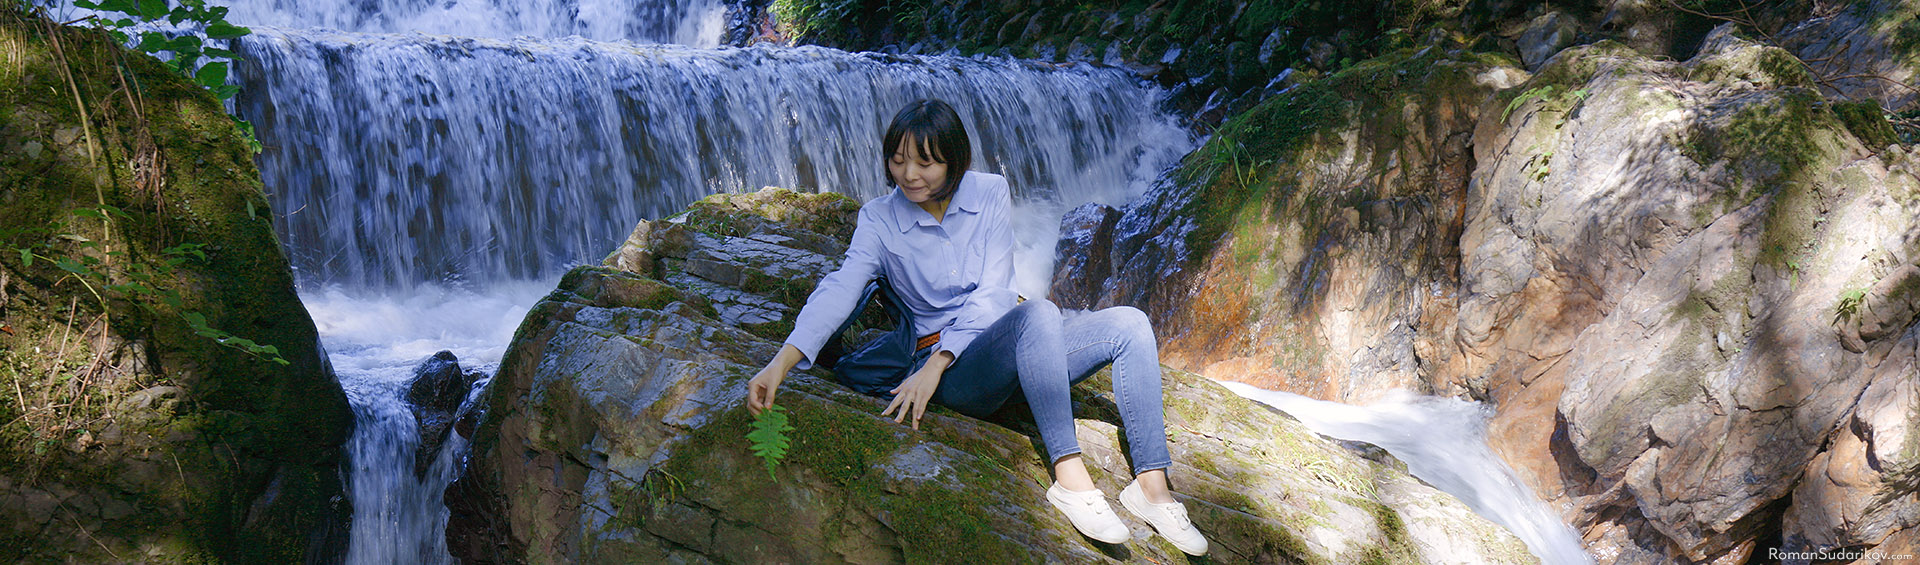 Young woman is sitting on the rock surrounded by water in Kibune, Kyoto.